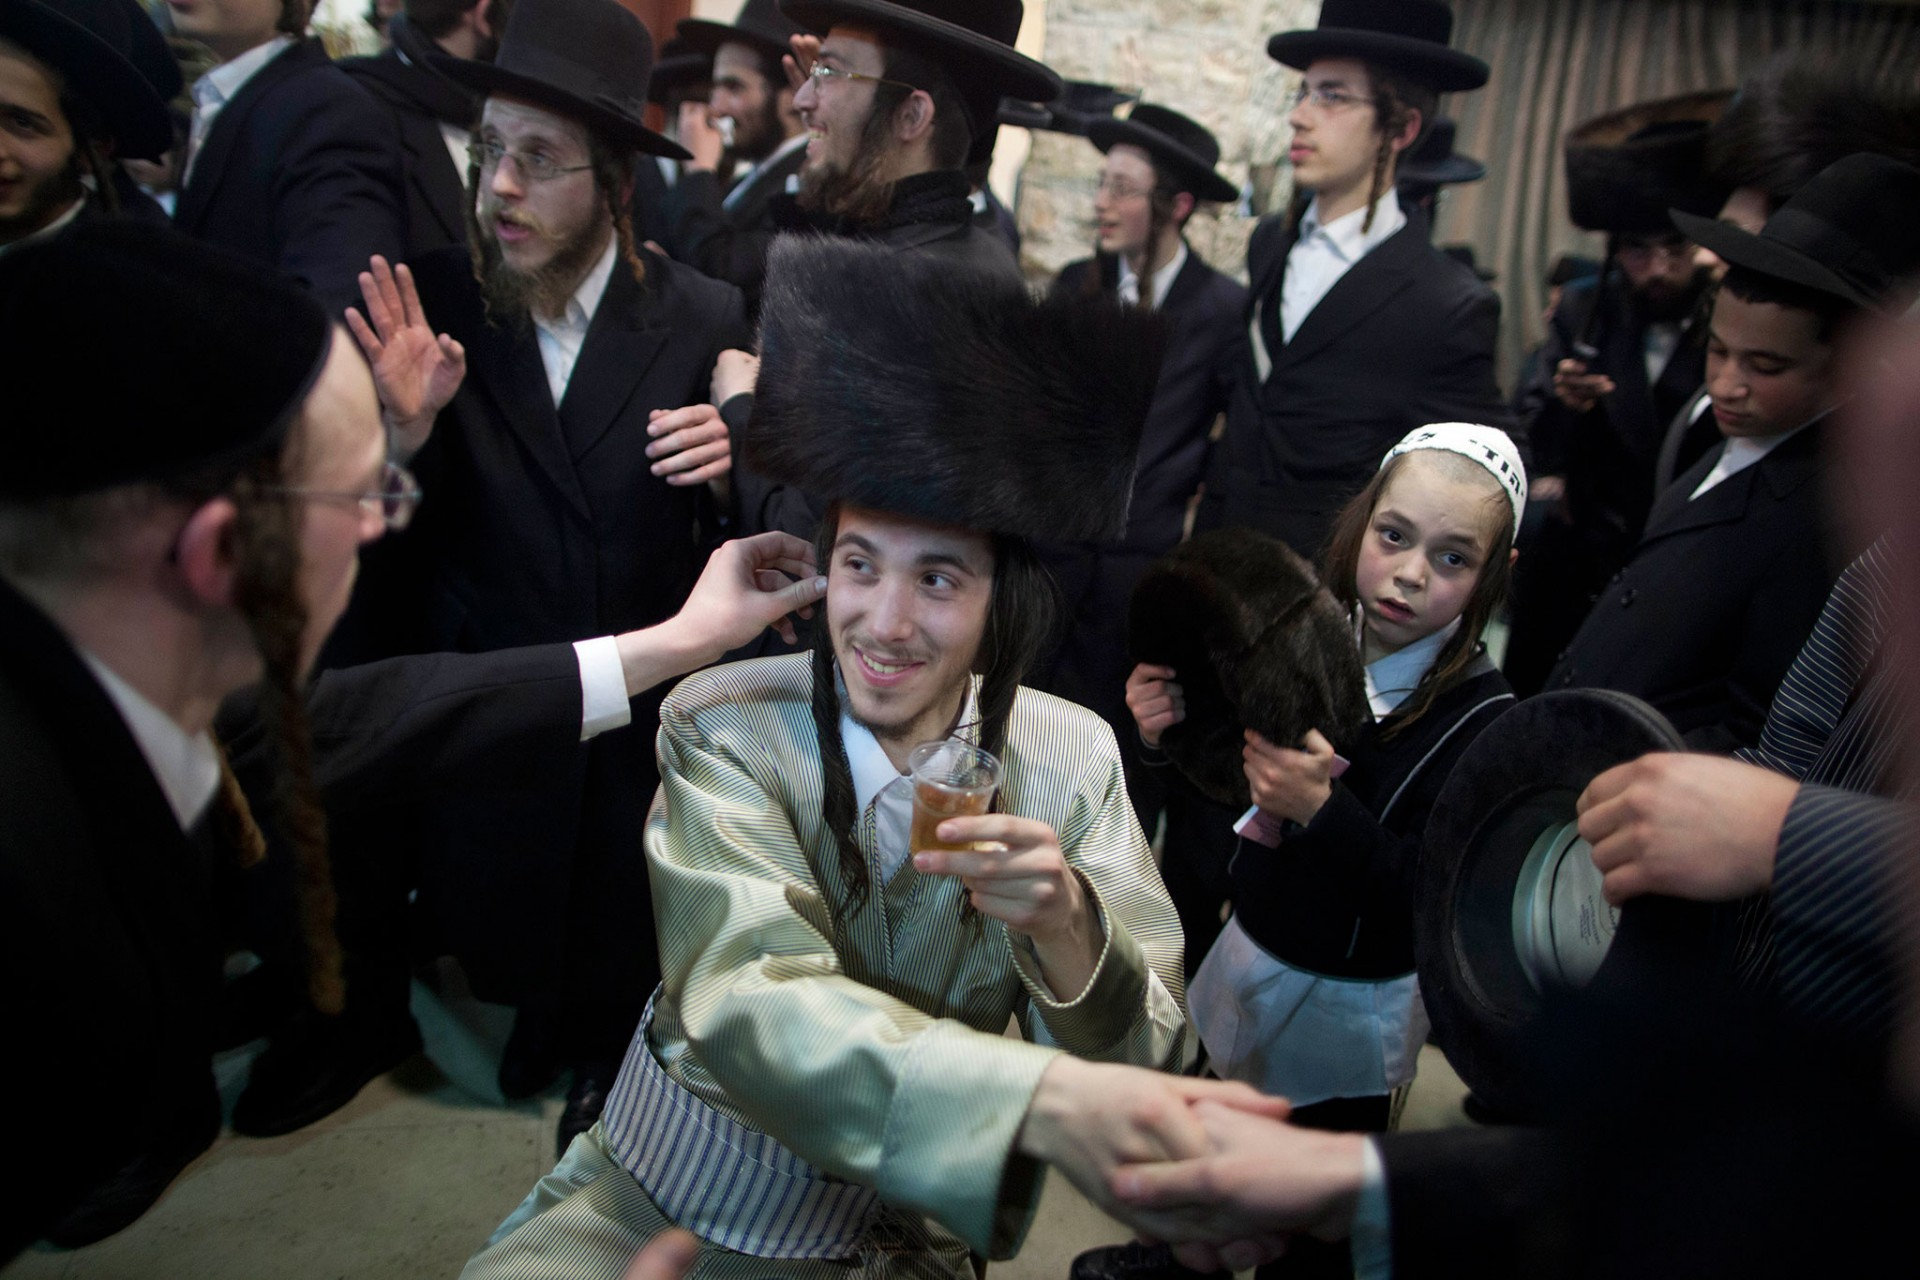 Haredi Jews In Israel: Ultra-Orthodox Jewish Wedding